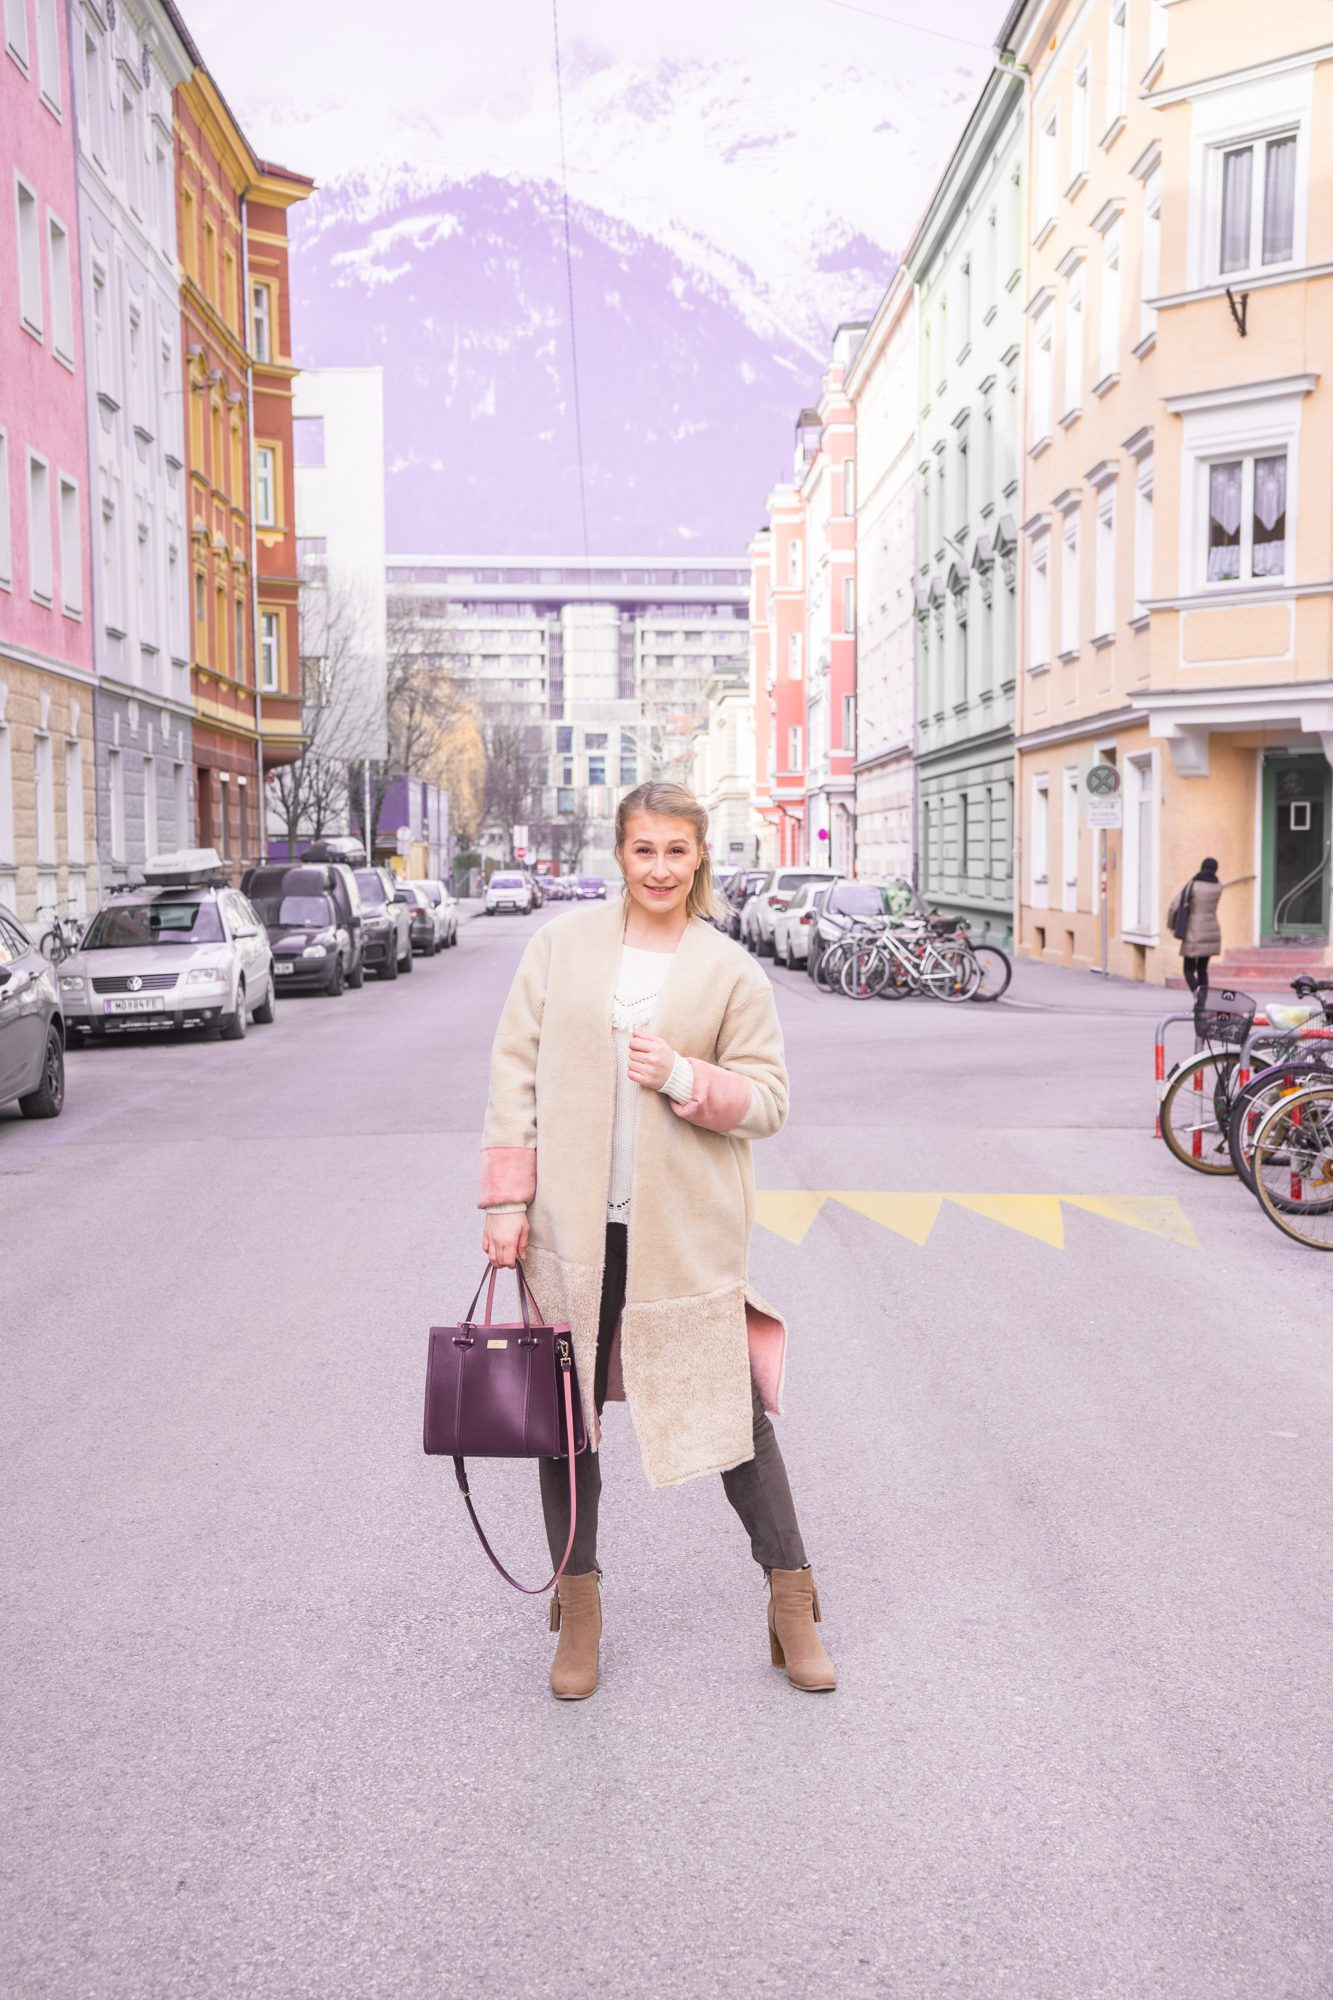 Outfit: Teddy Coat, Neutral Tones and A Pop of Rosé